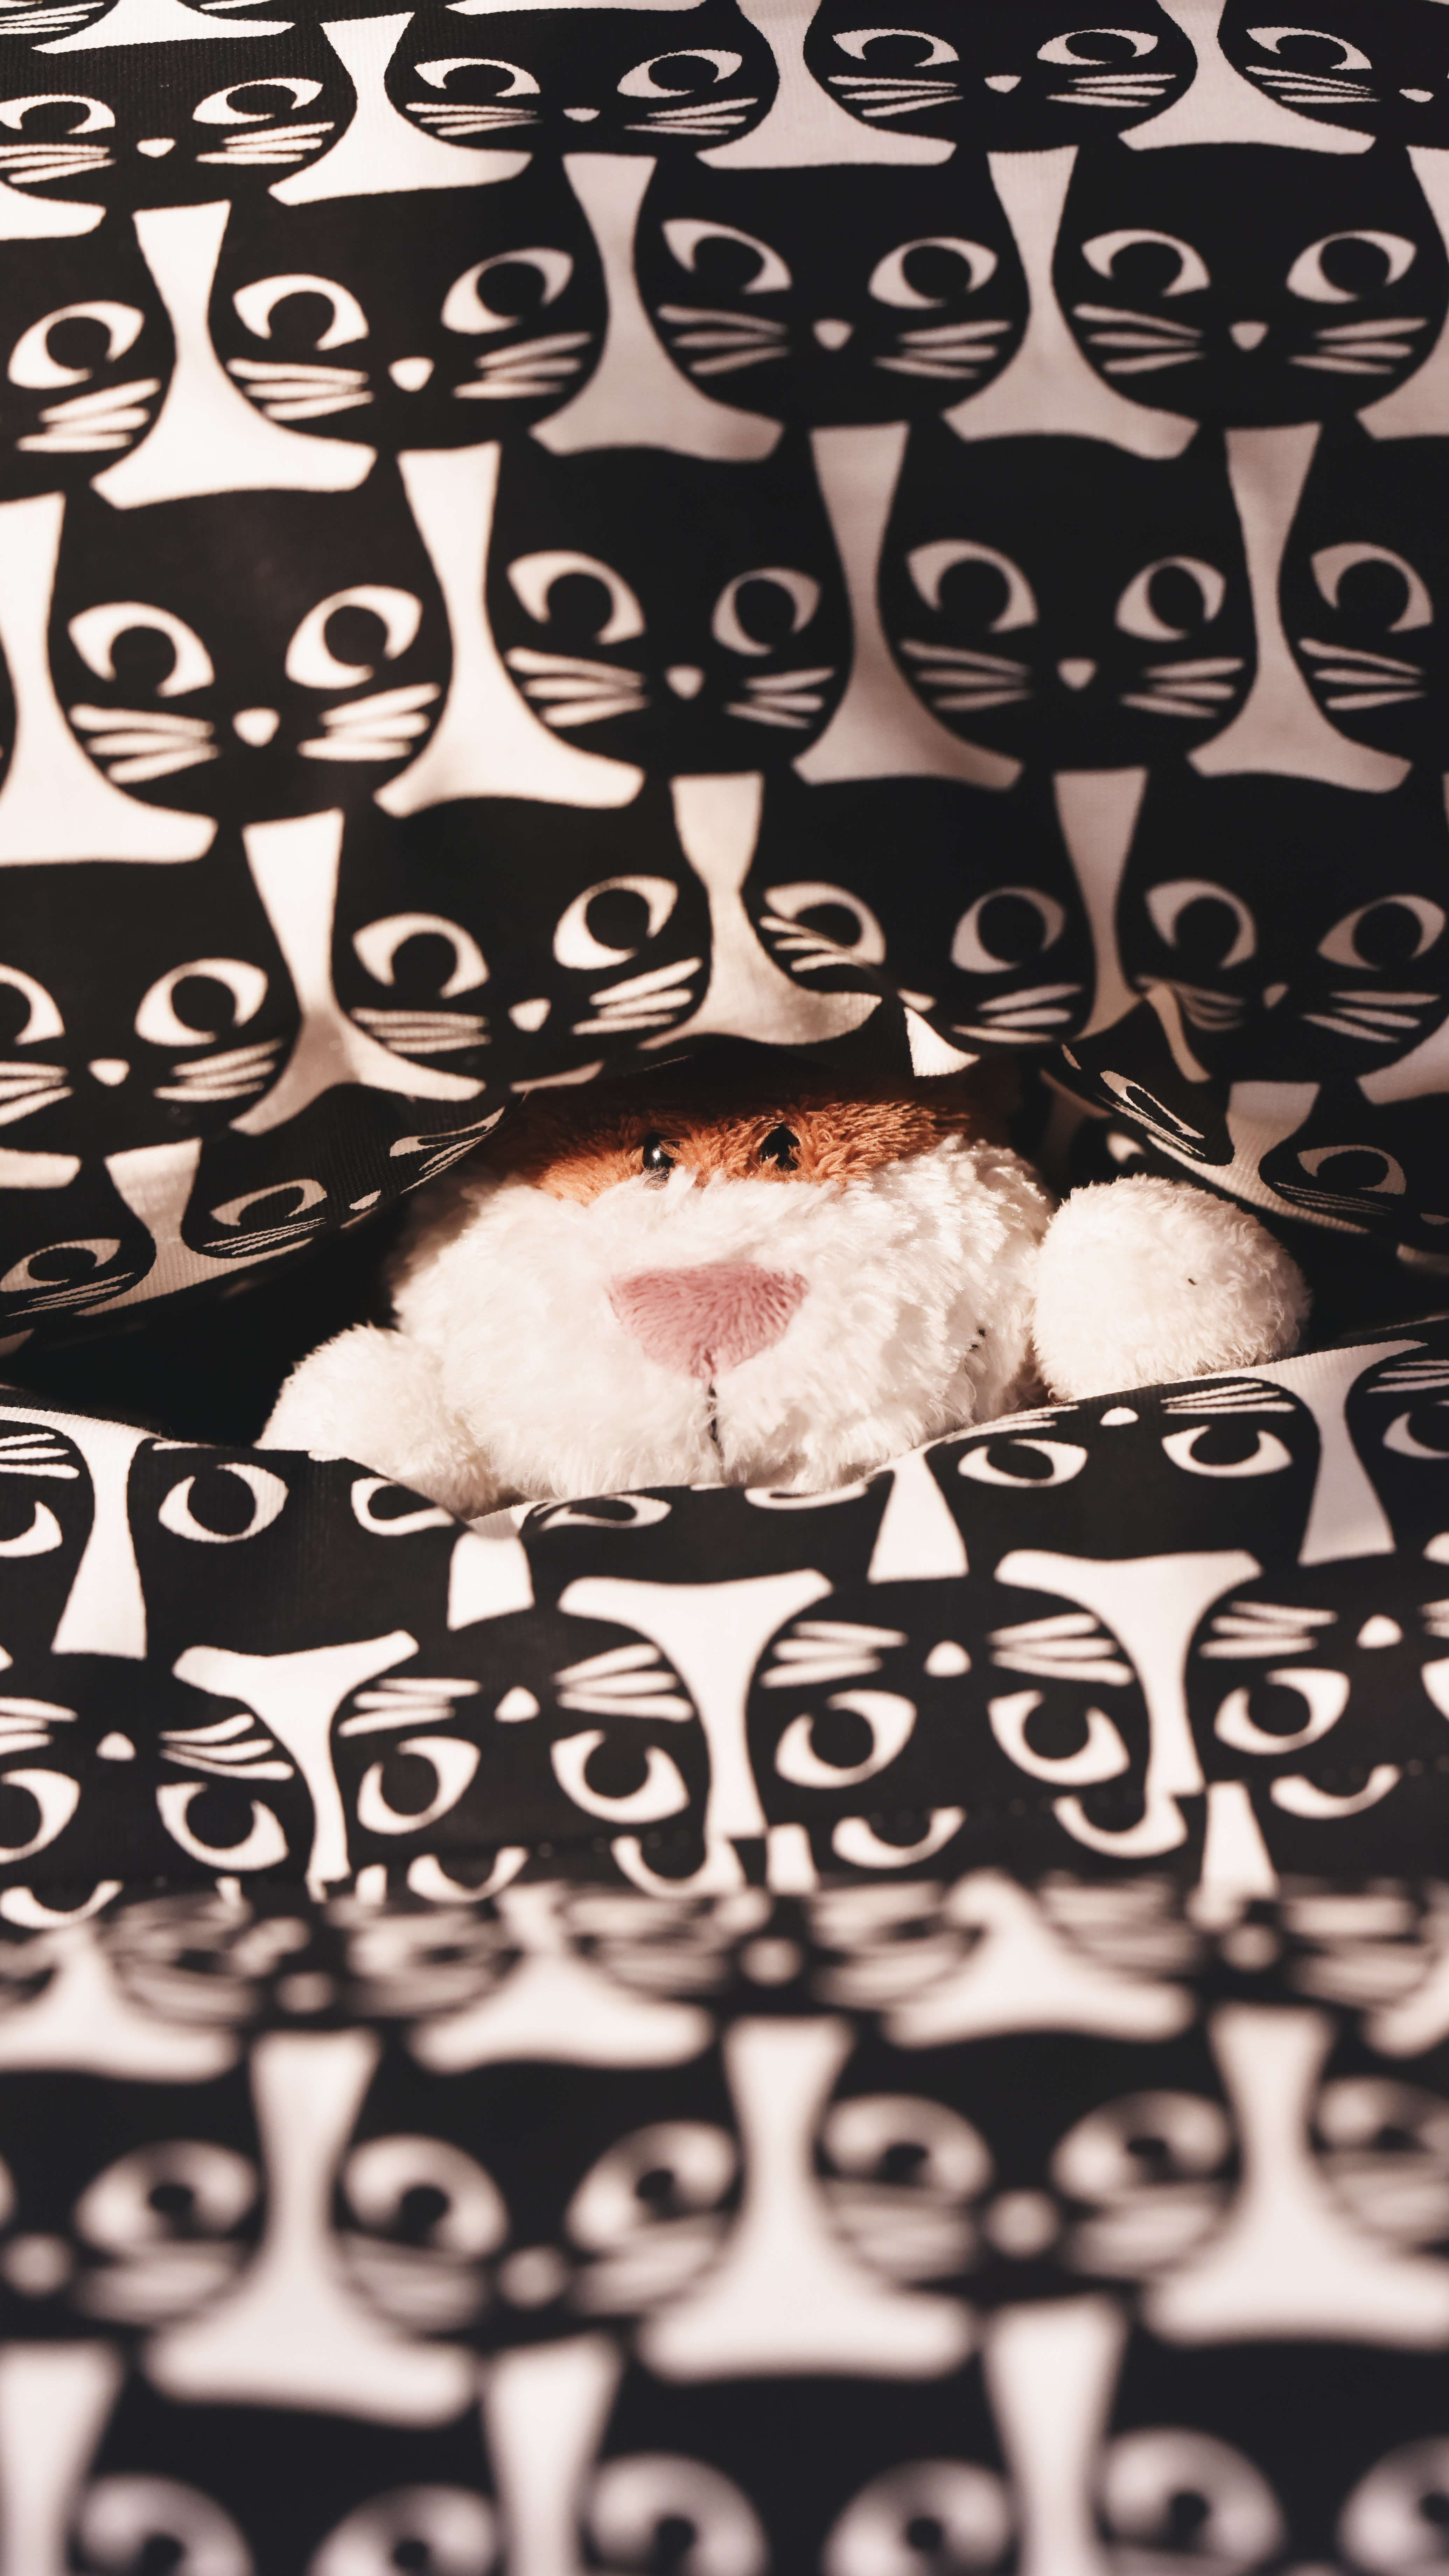 77639 download wallpaper Miscellanea, Miscellaneous, Toy, Plush, Peek Out, Look Out, Pattern, Cats screensavers and pictures for free